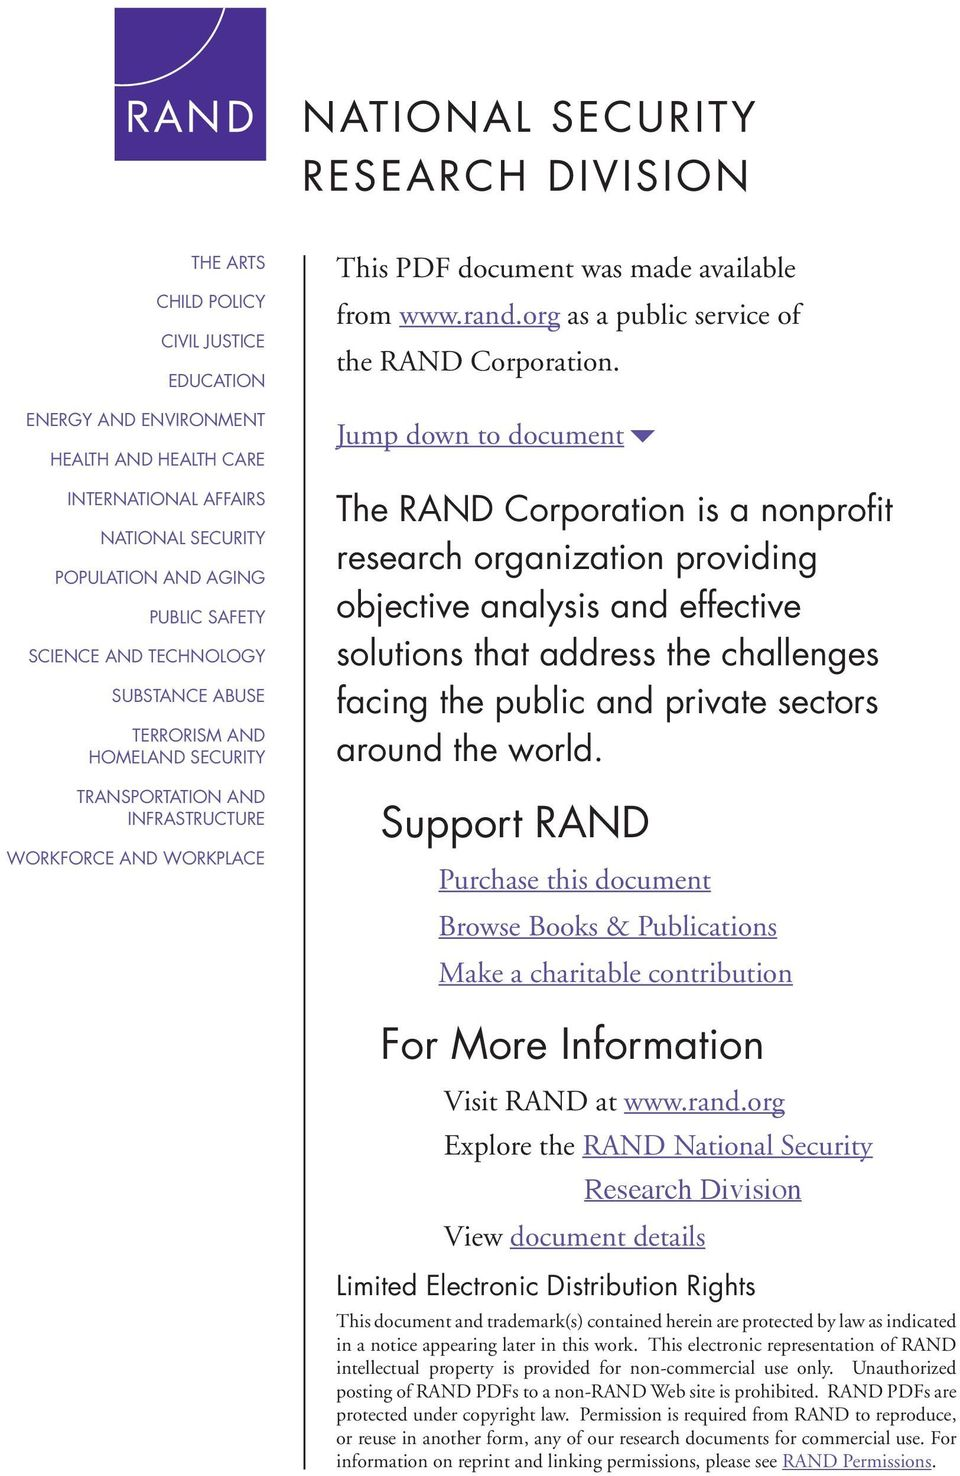 Jump down to document6 The RAND Corporation is a nonprofit research organization providing objective analysis and effective solutions that address the challenges facing the public and private sectors